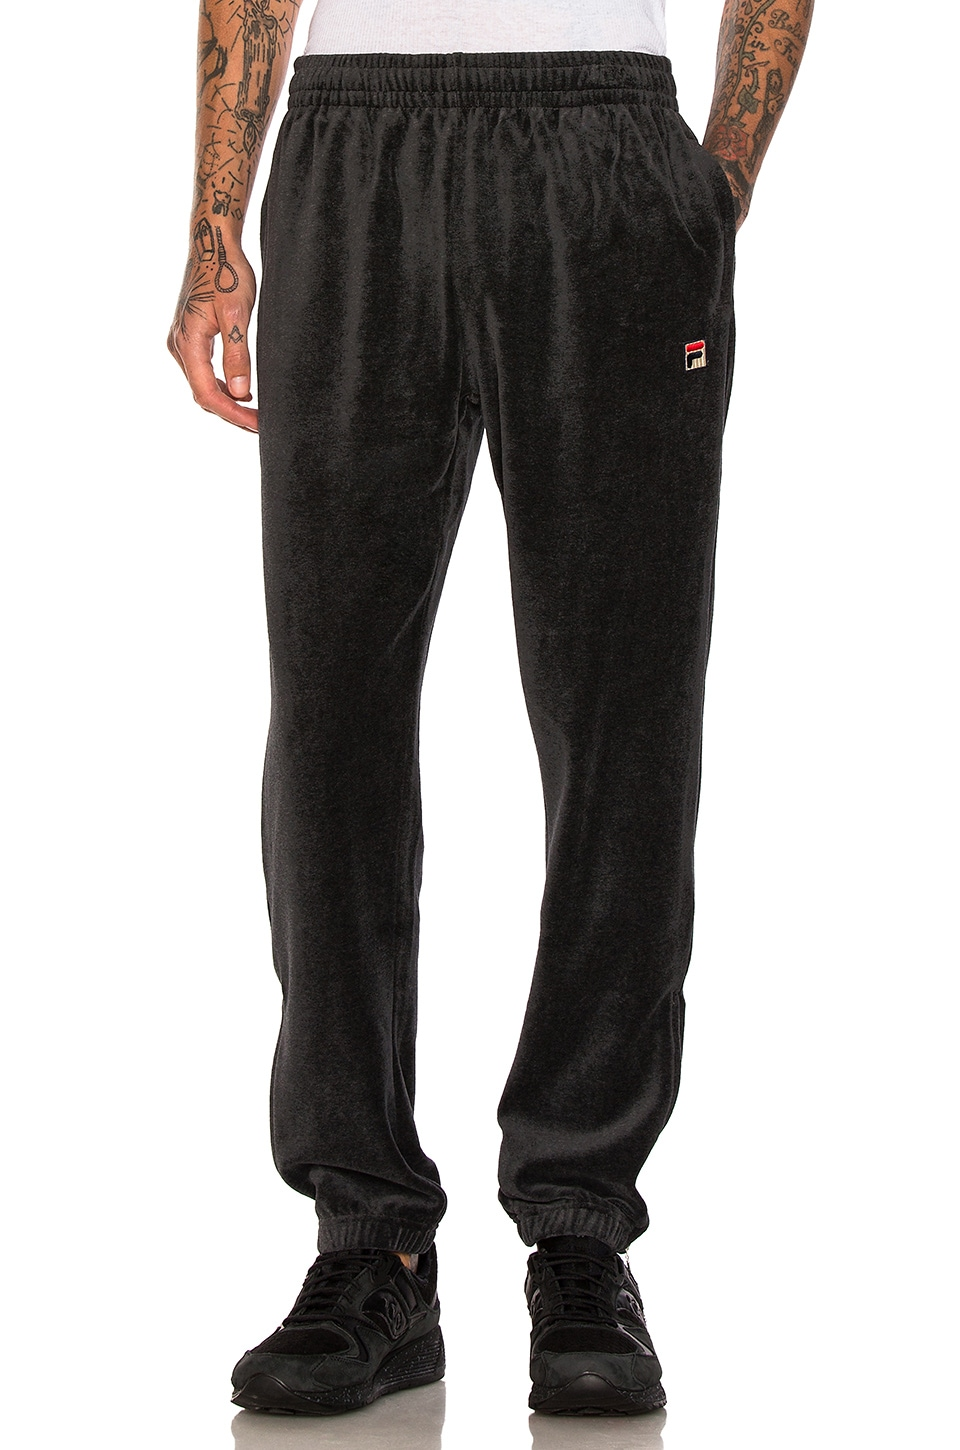 Velour Pants by Fila